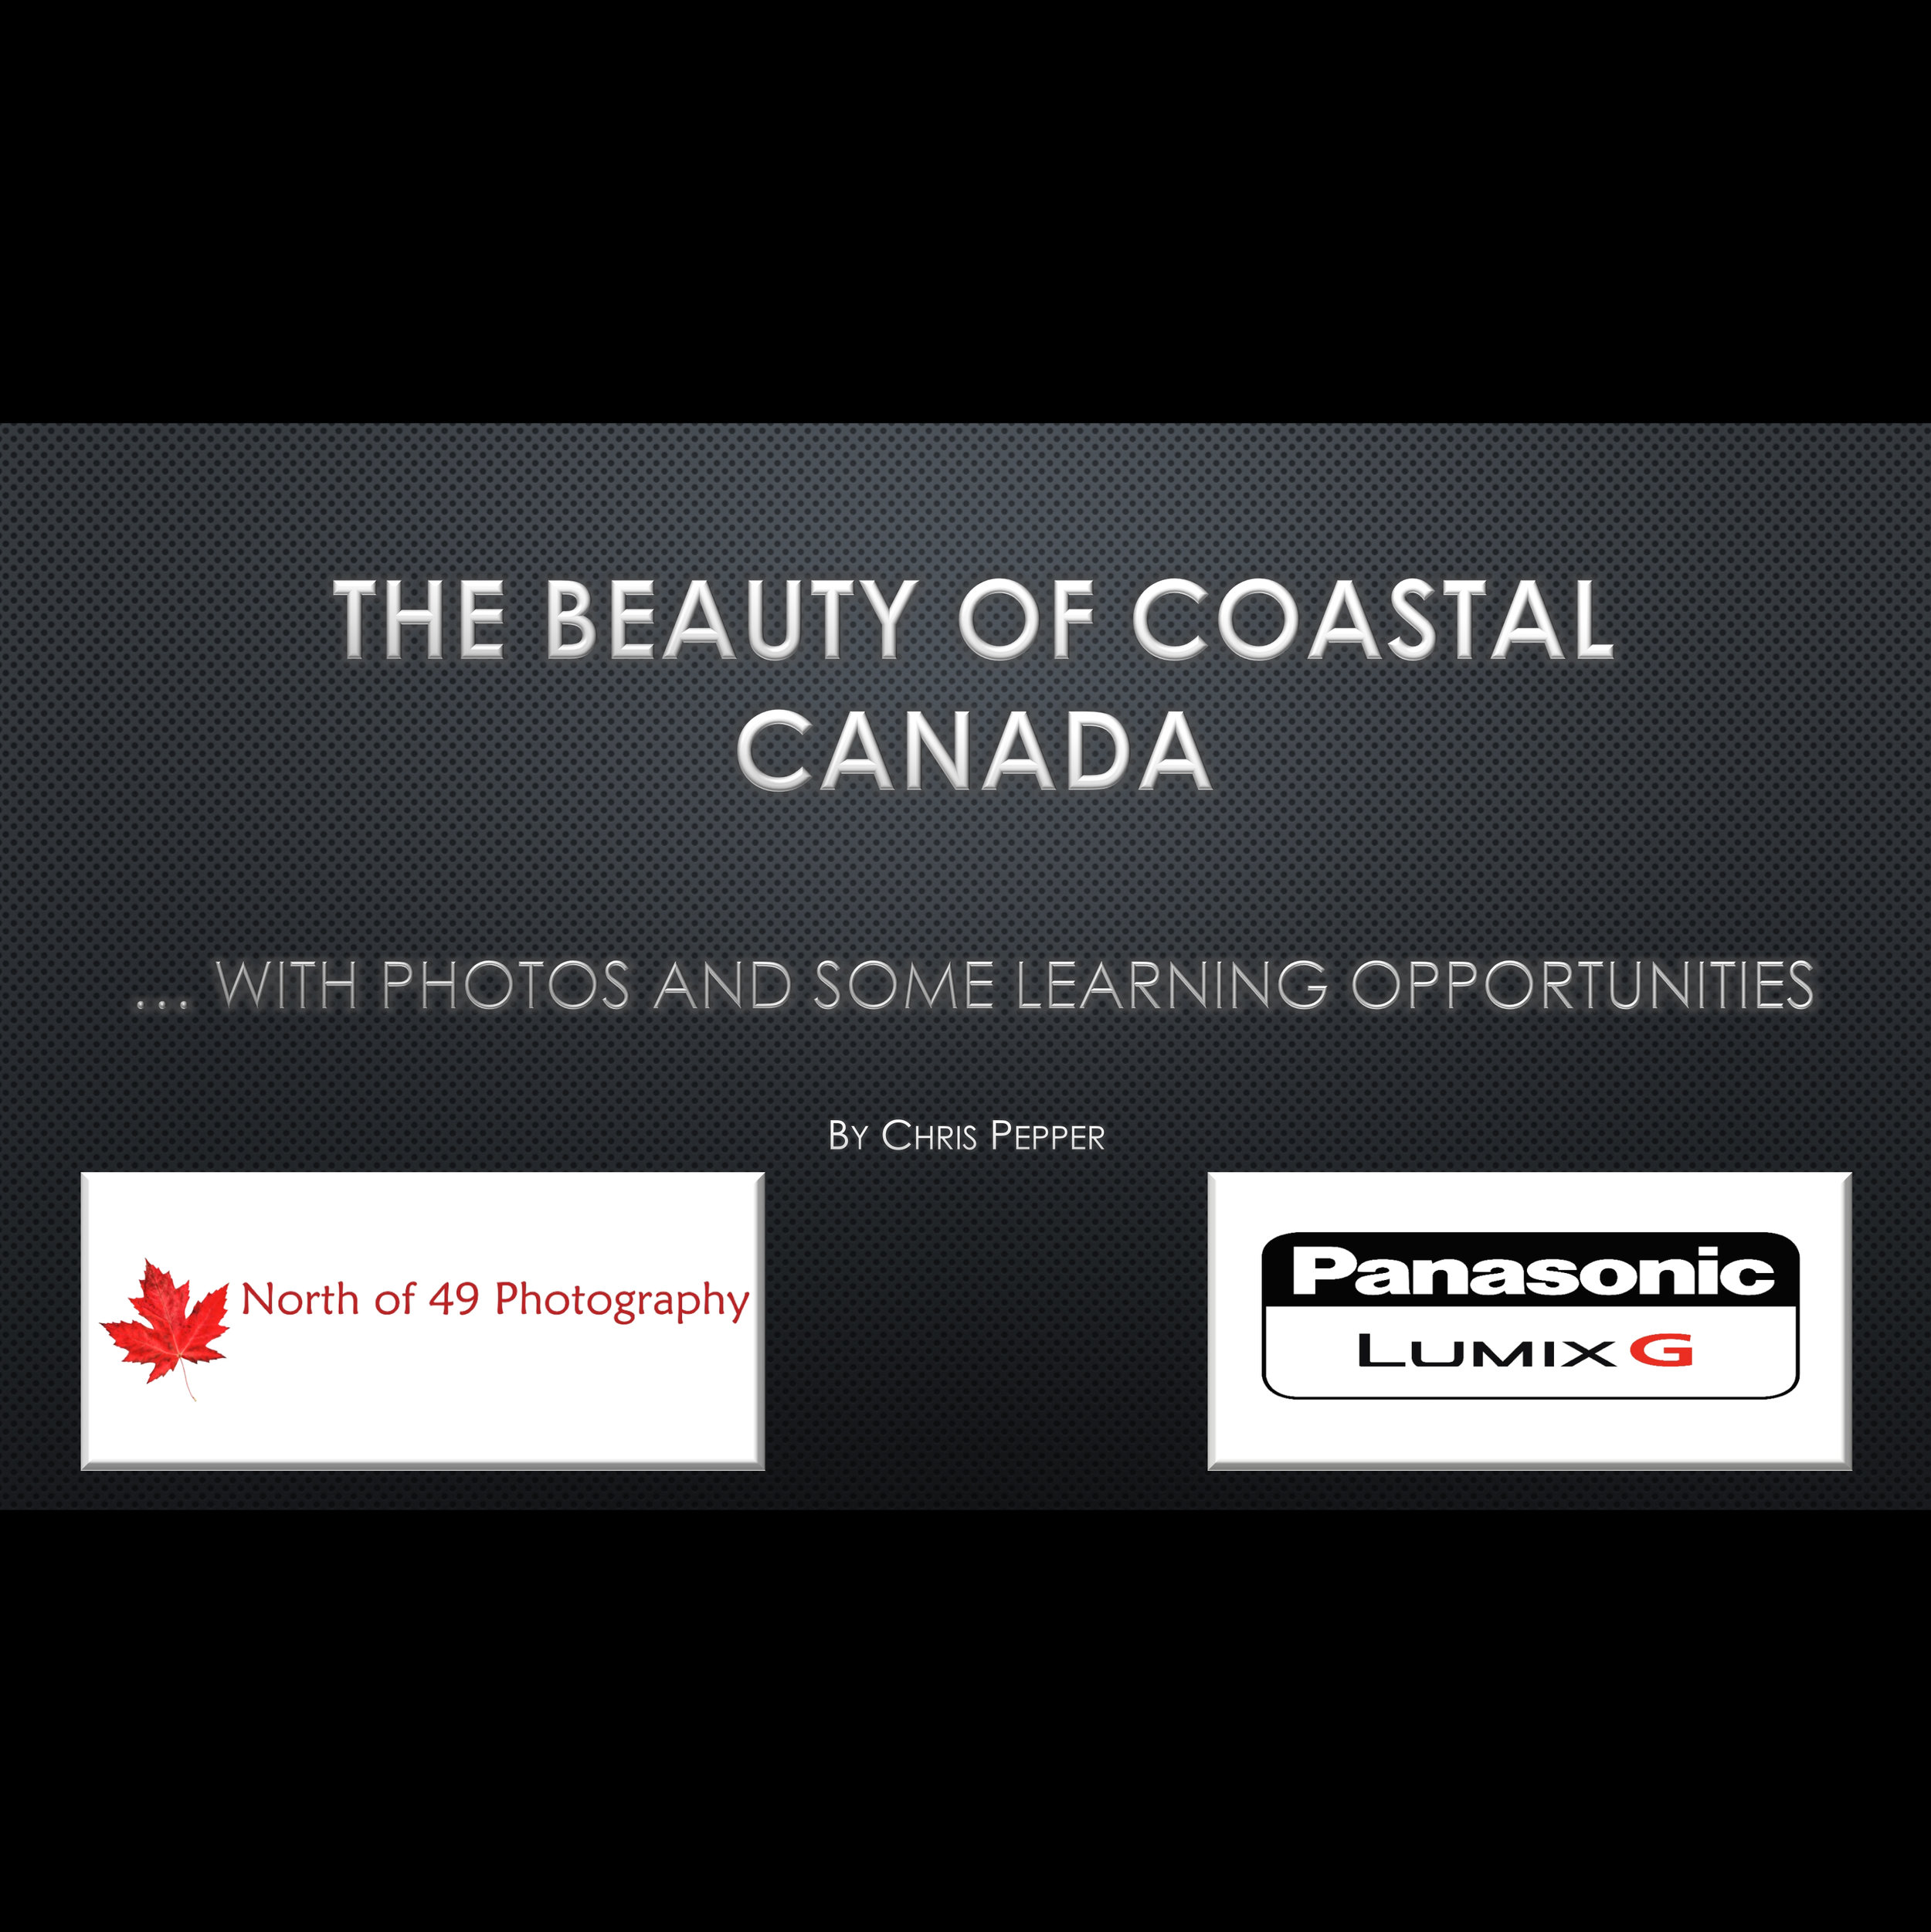 Coastal Canada speaking engagement with Chris Pepper